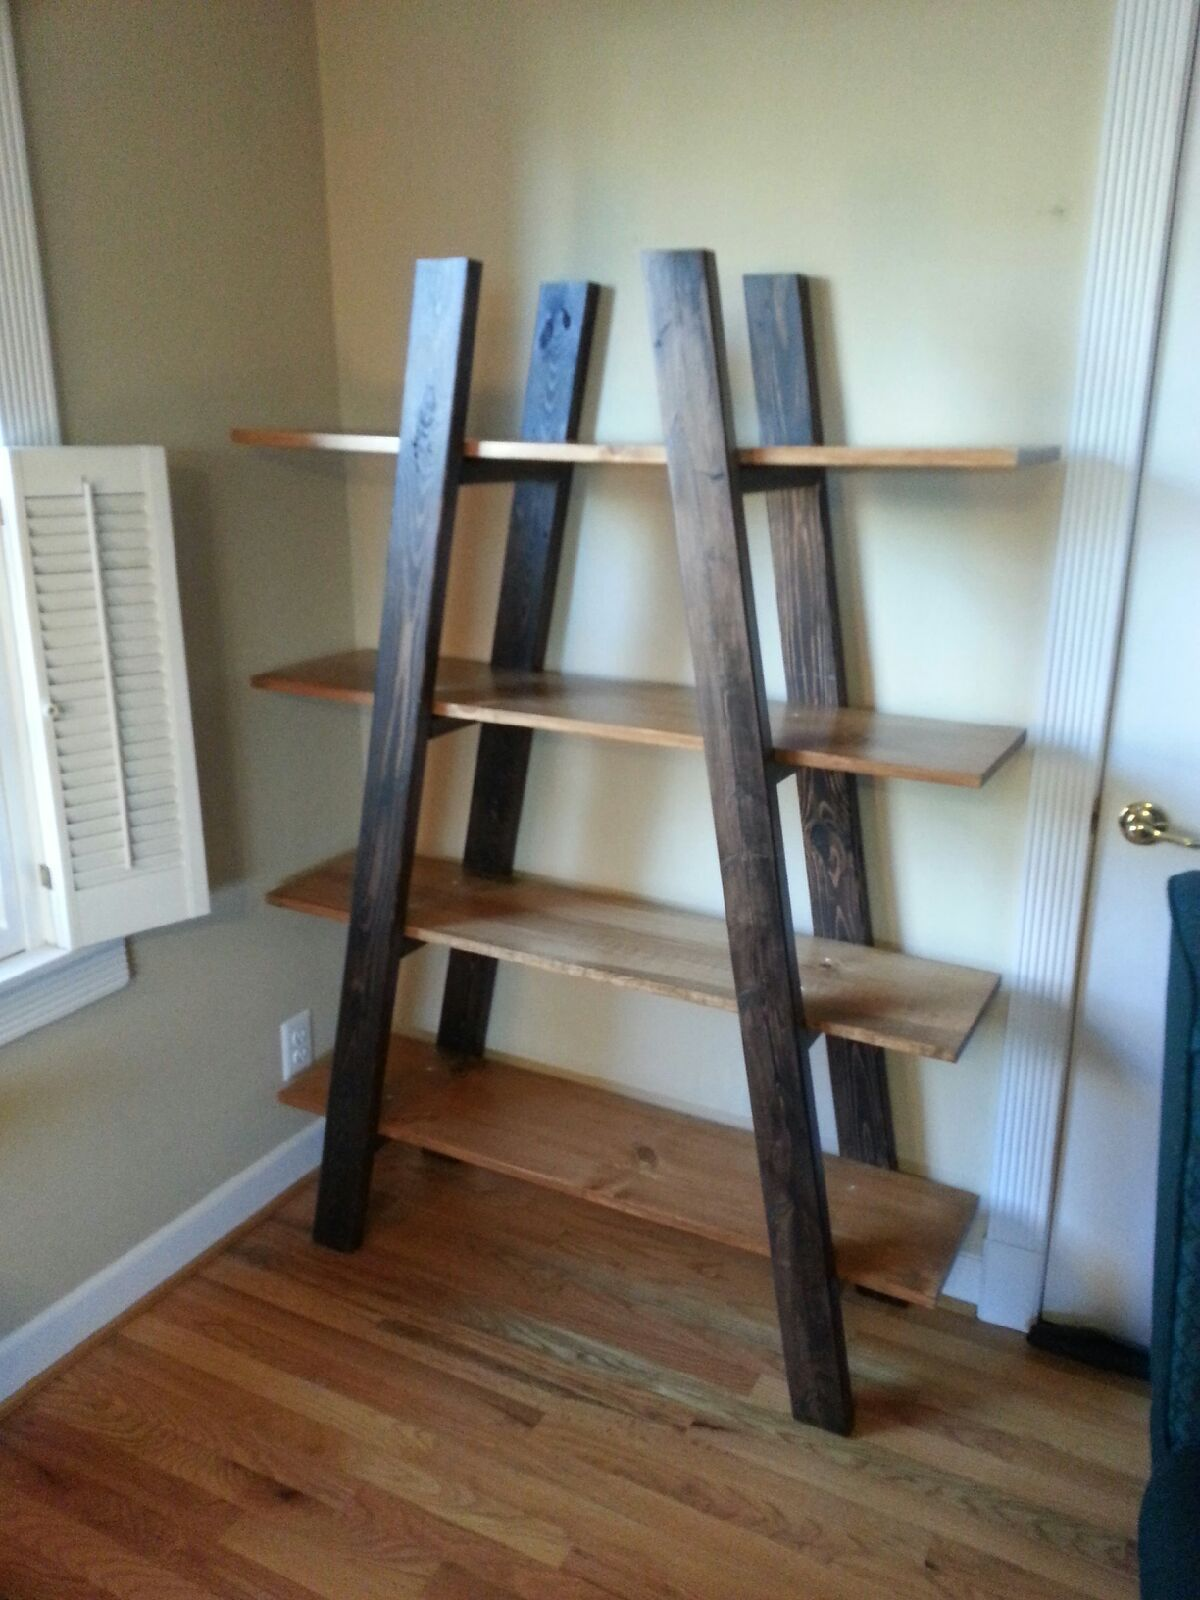 Reading nook truss shelve do it yourself home projects from ana reading nook truss shelve diy projects solutioingenieria Image collections